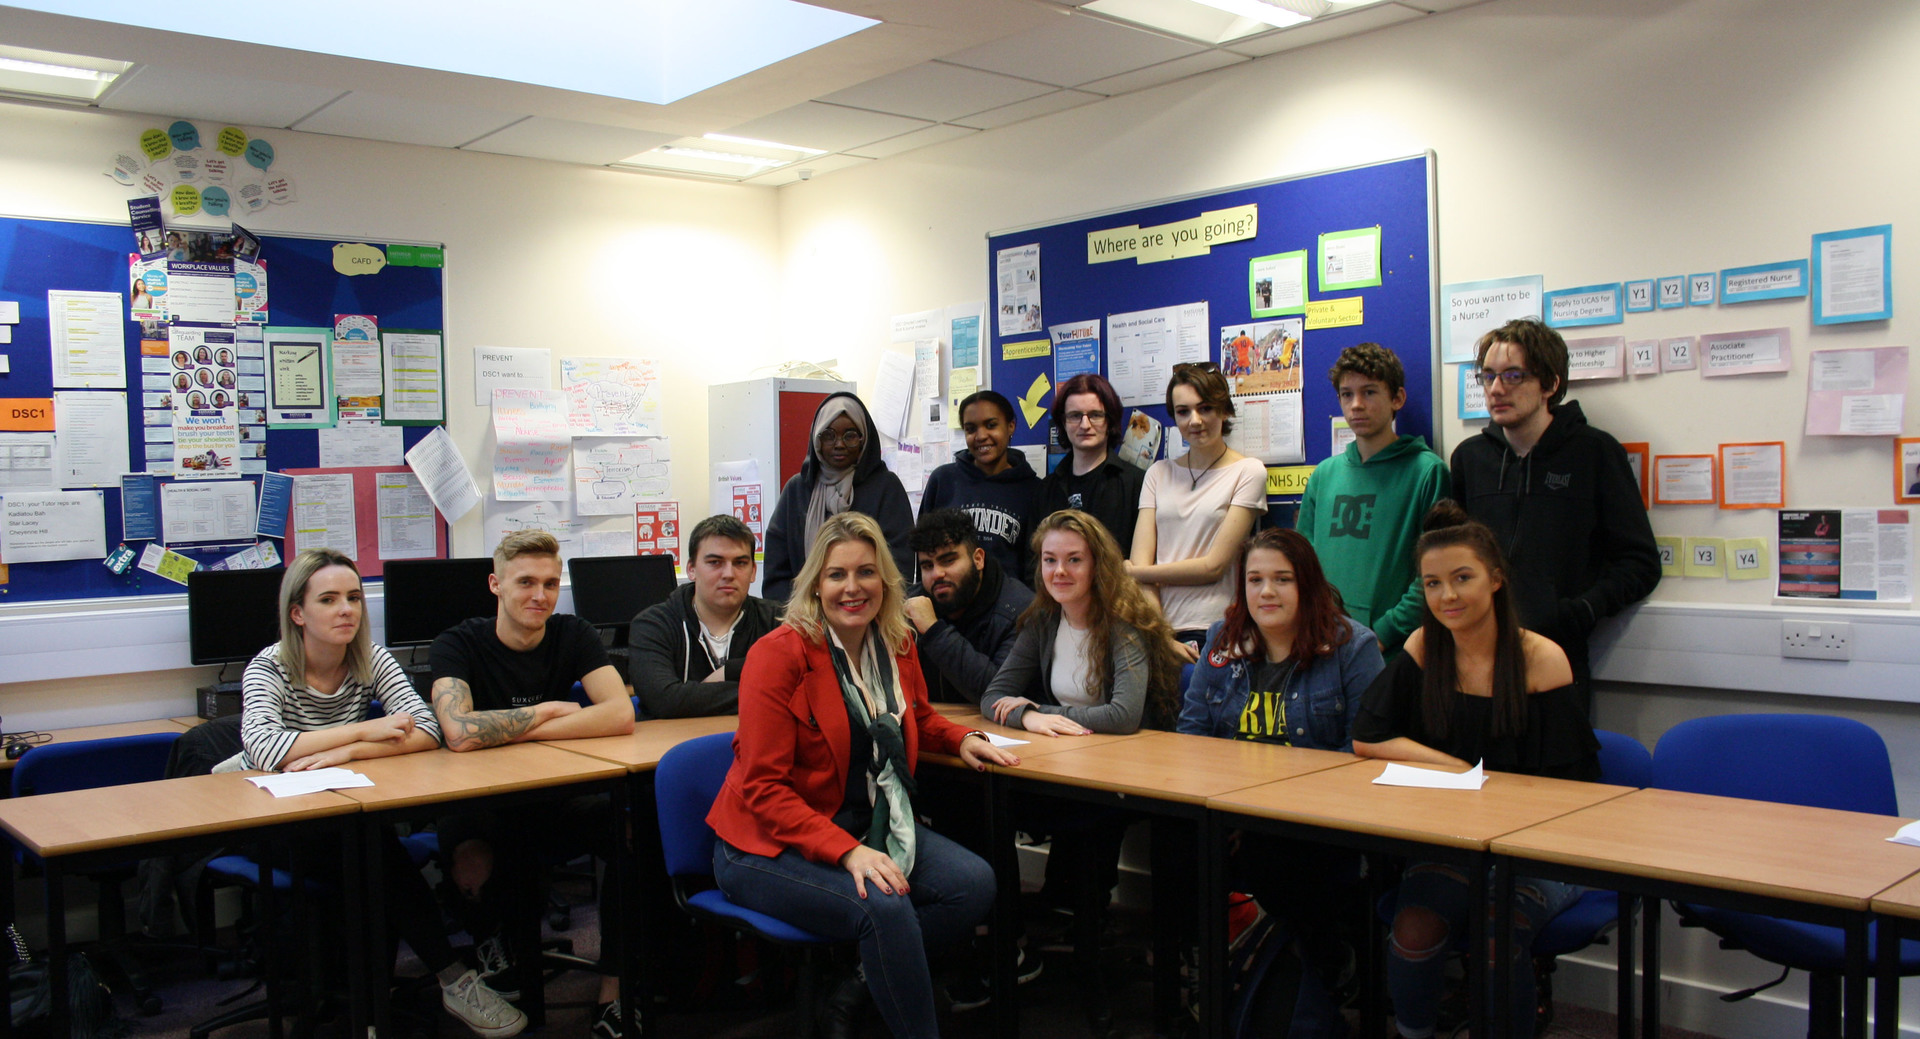 Local MP visits students during Parliament Week